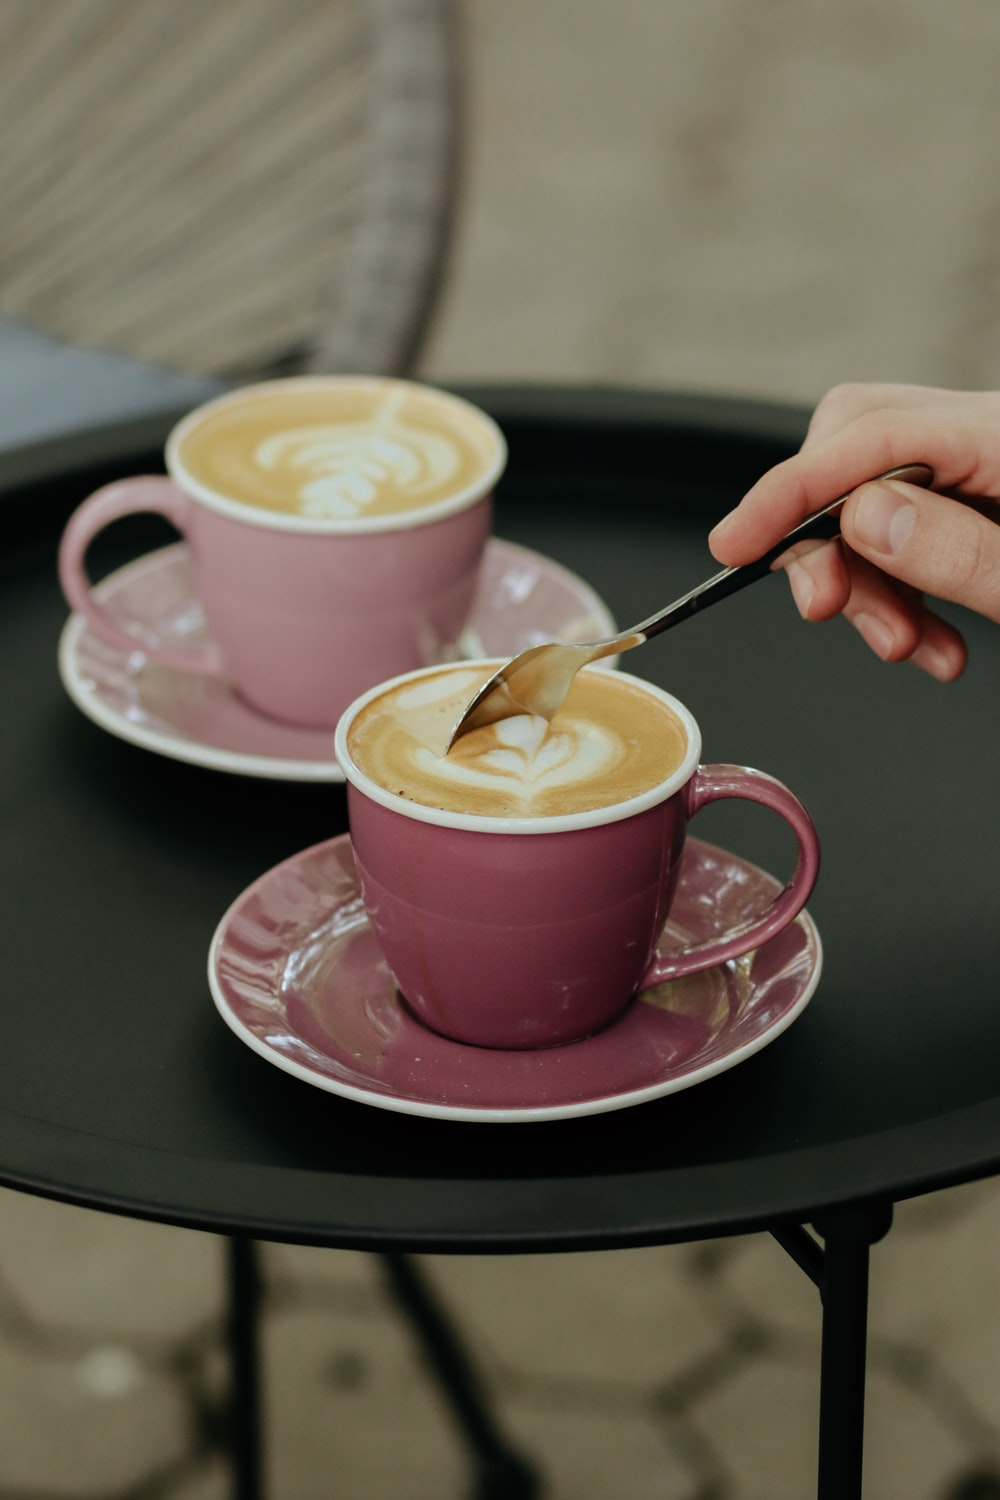 pink ceramic cup with saucer and spoon